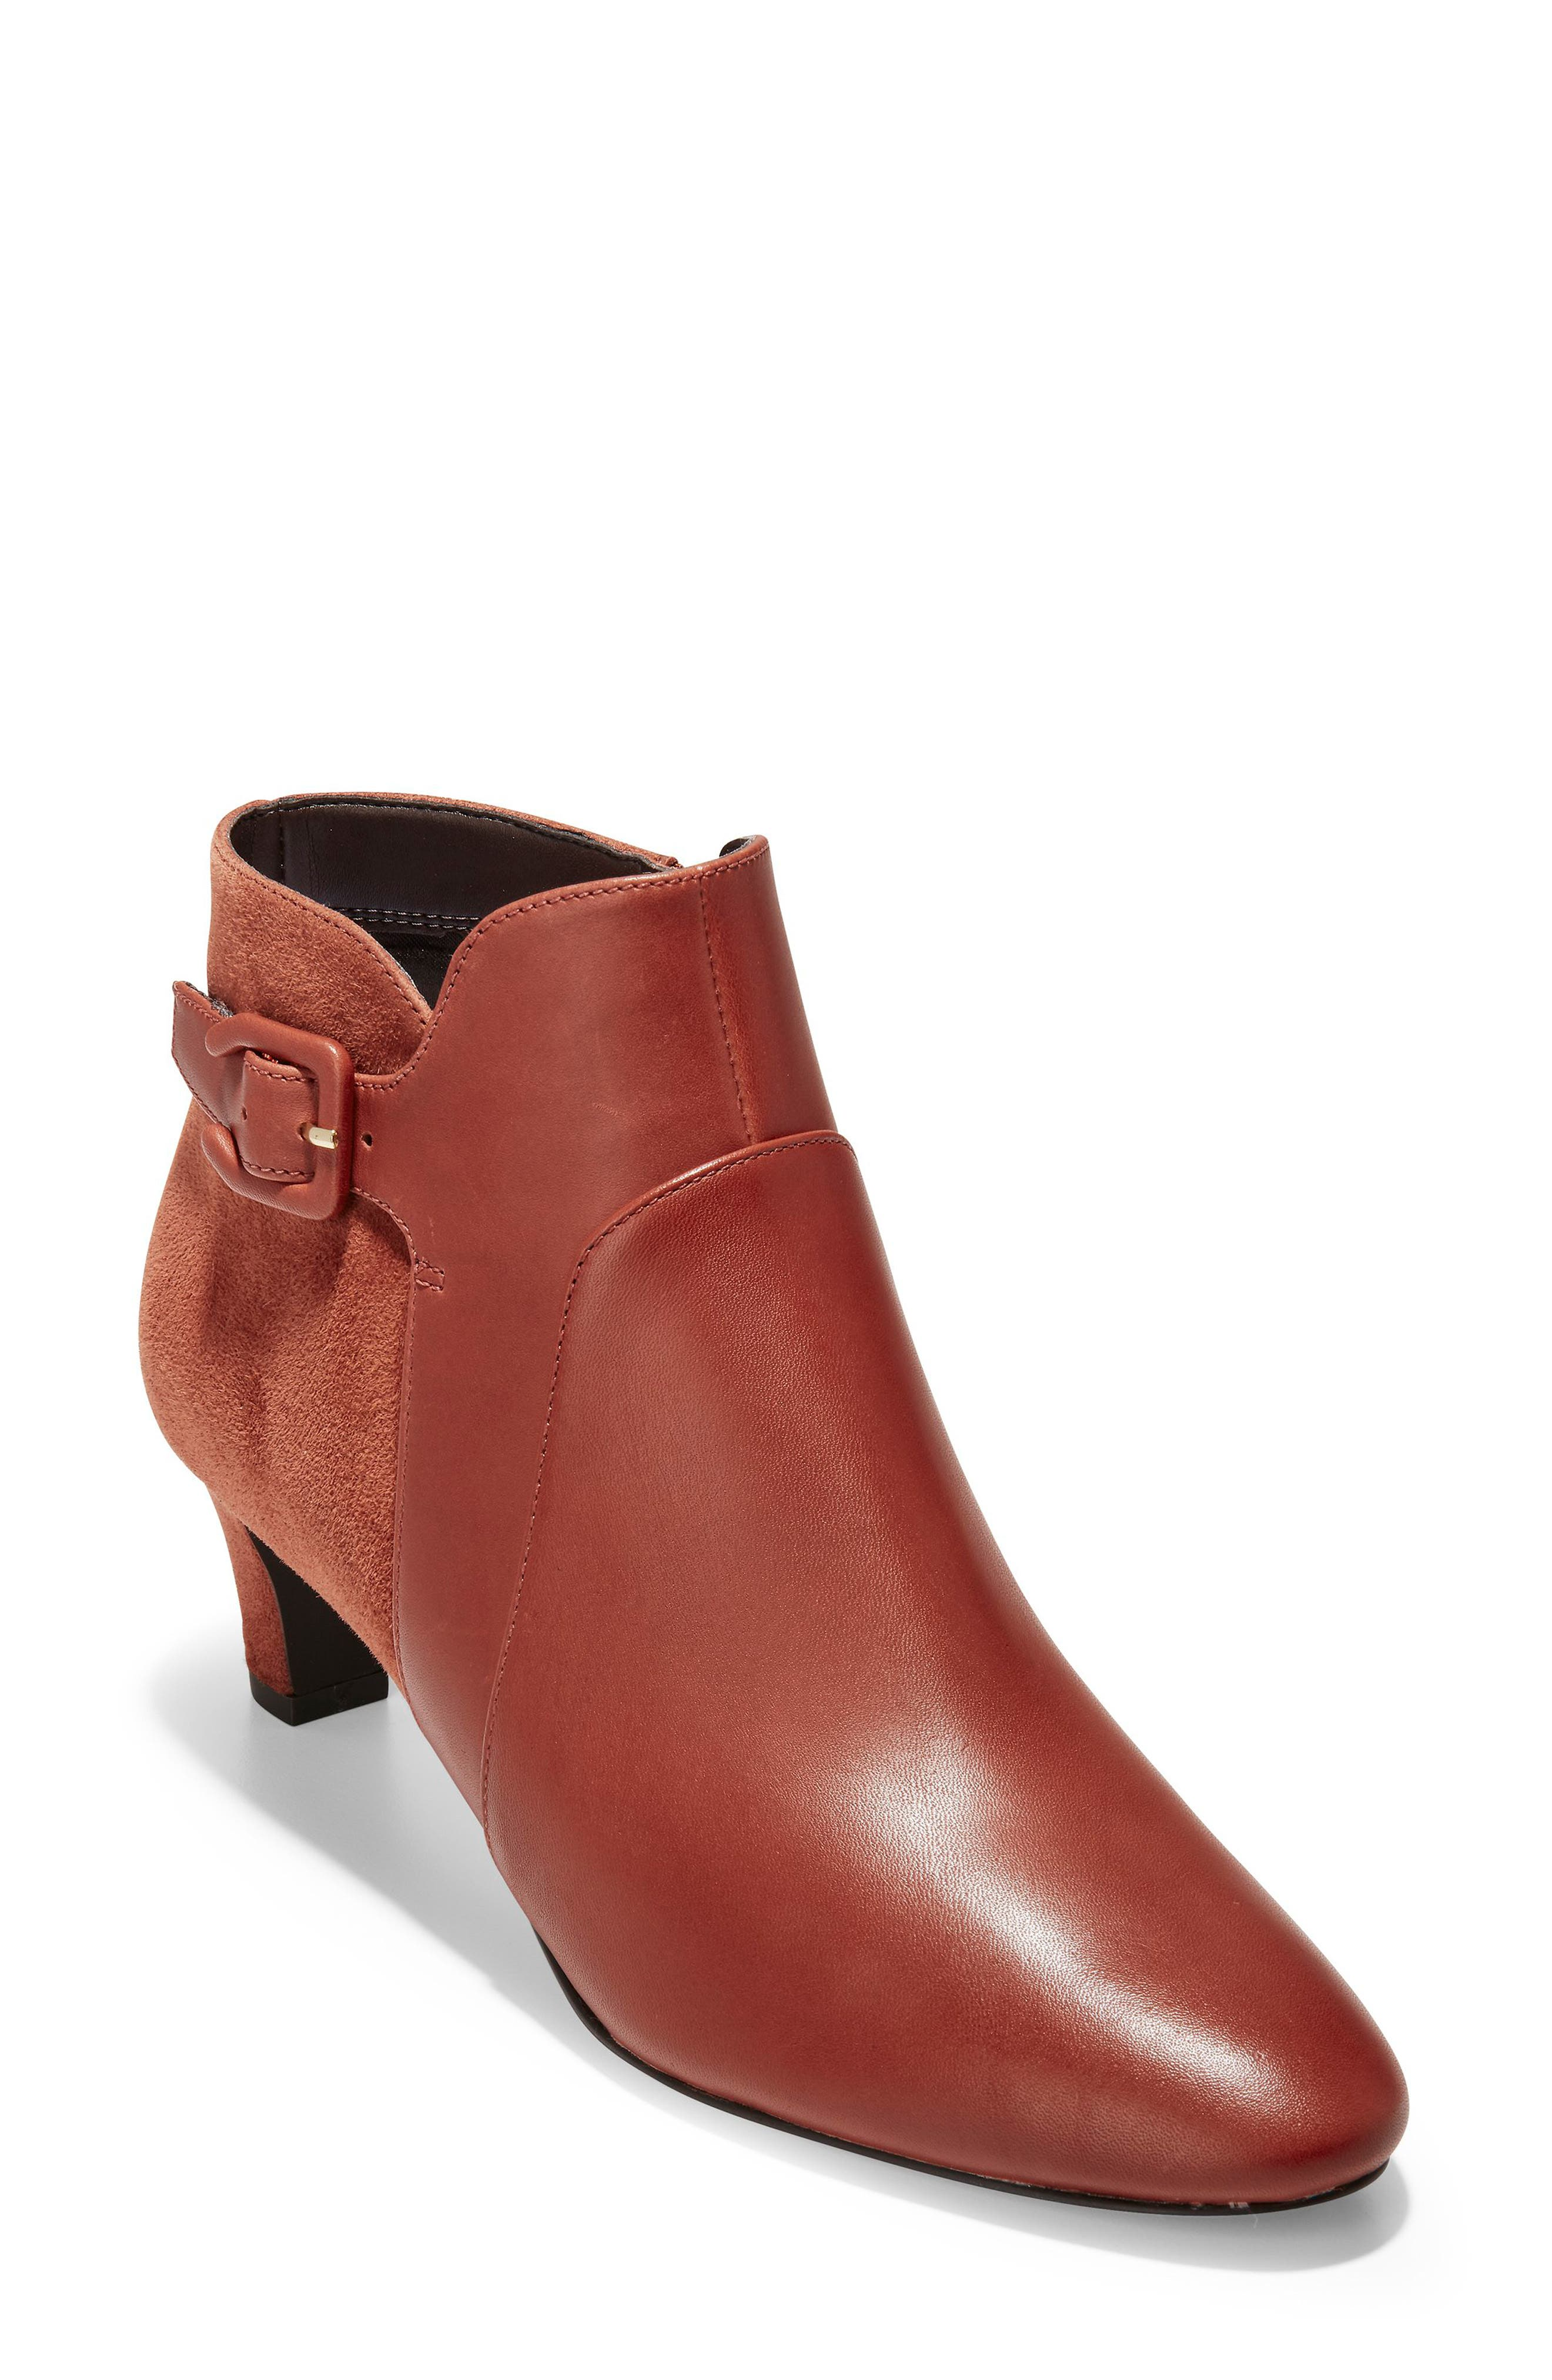 Sylvia Waterproof Bootie,                             Main thumbnail 1, color,                             BRANDY LEATHER